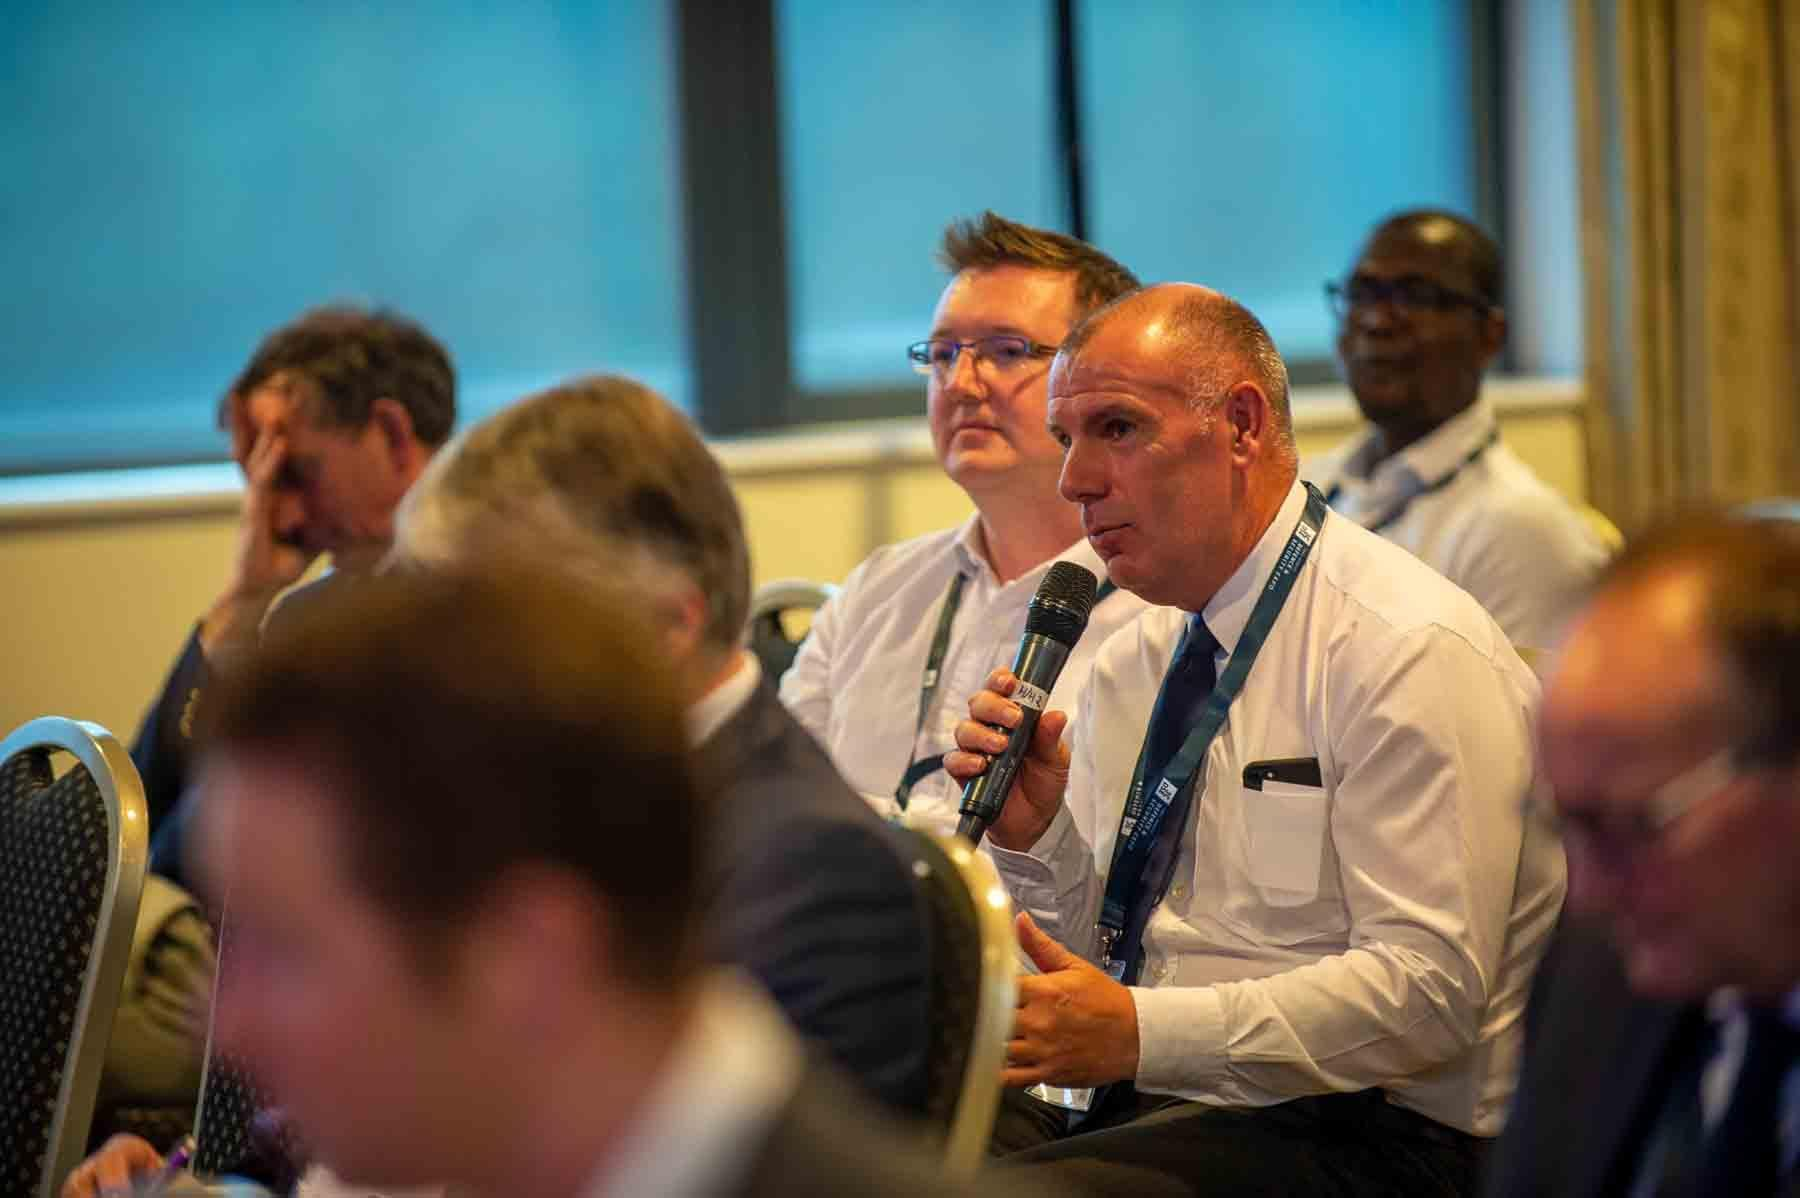 3CDSE networking breakfast questions conference